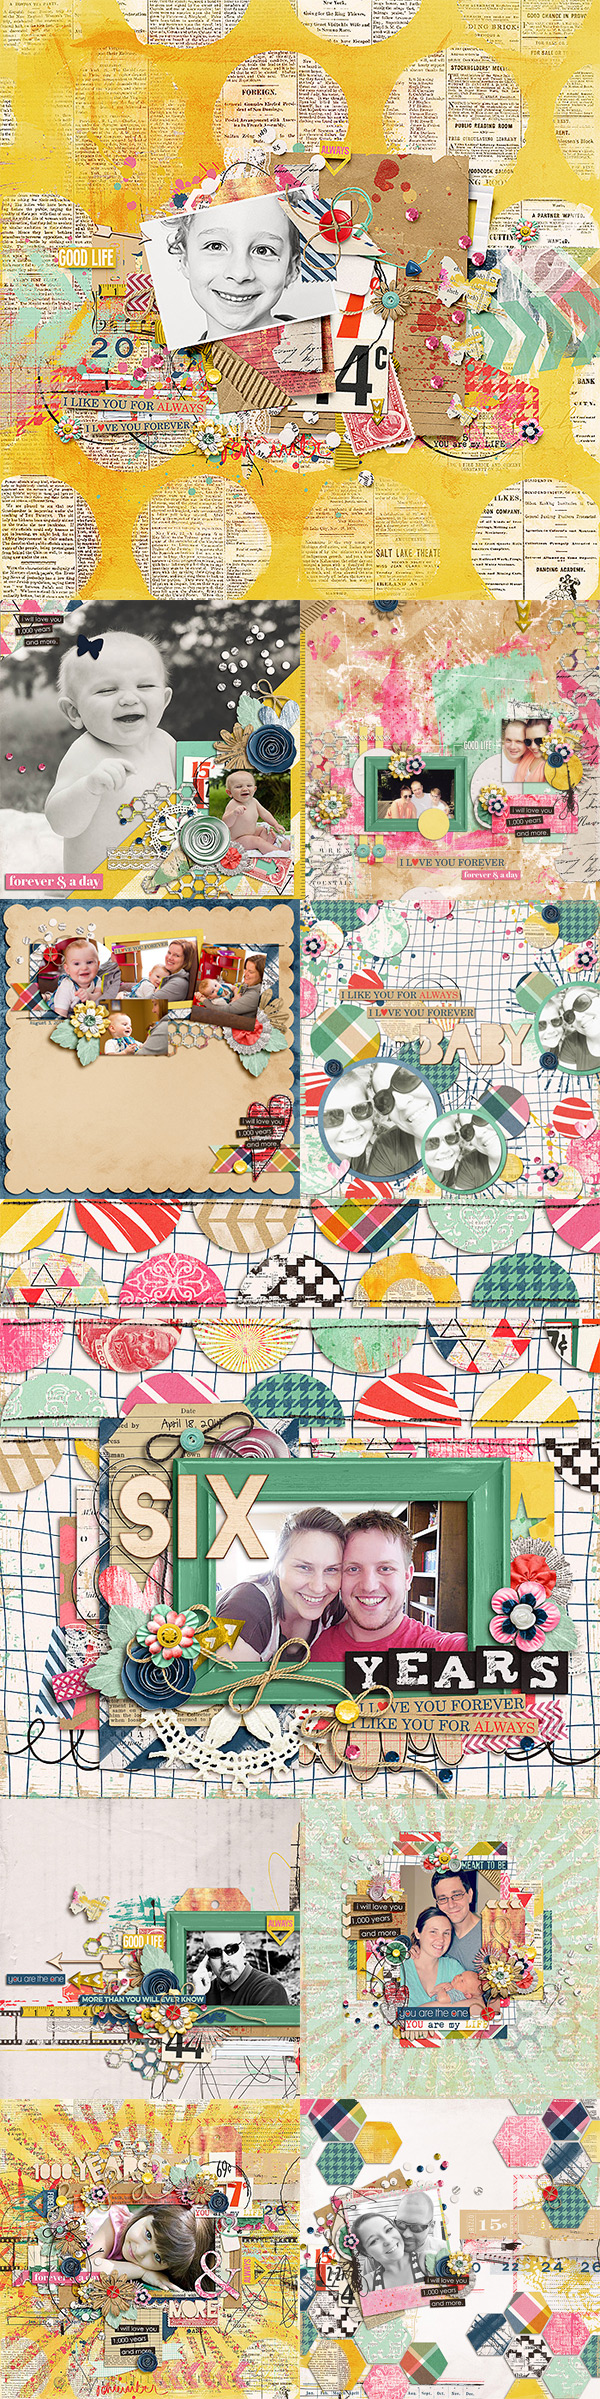 Layouts using A Thousand Years by Shawna Clingerman and Studio Basic